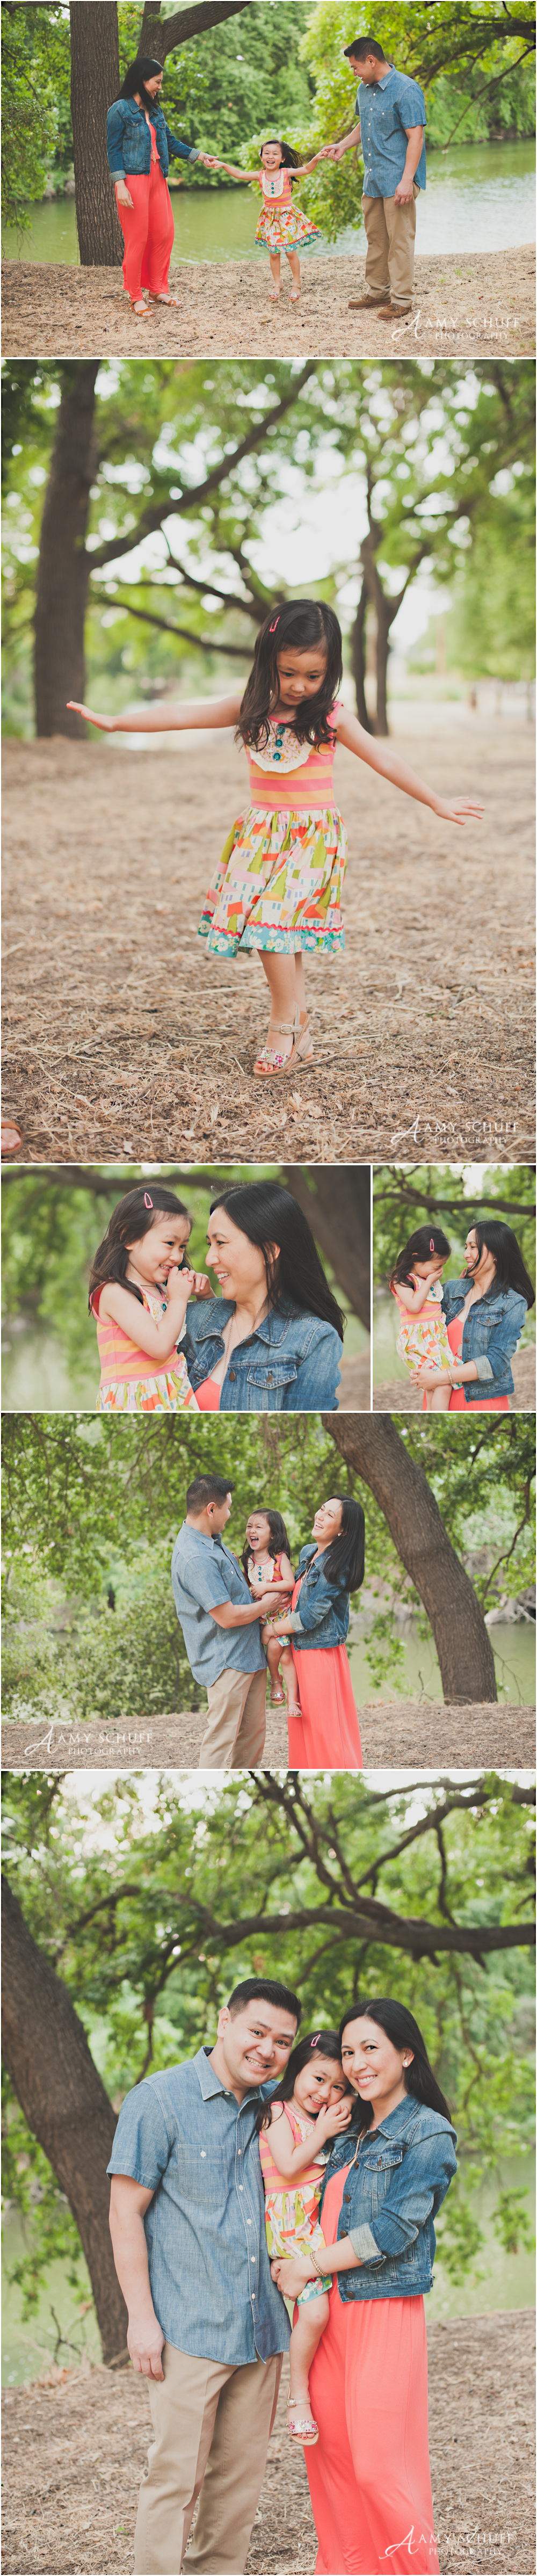 Sacramento Mini Sessions